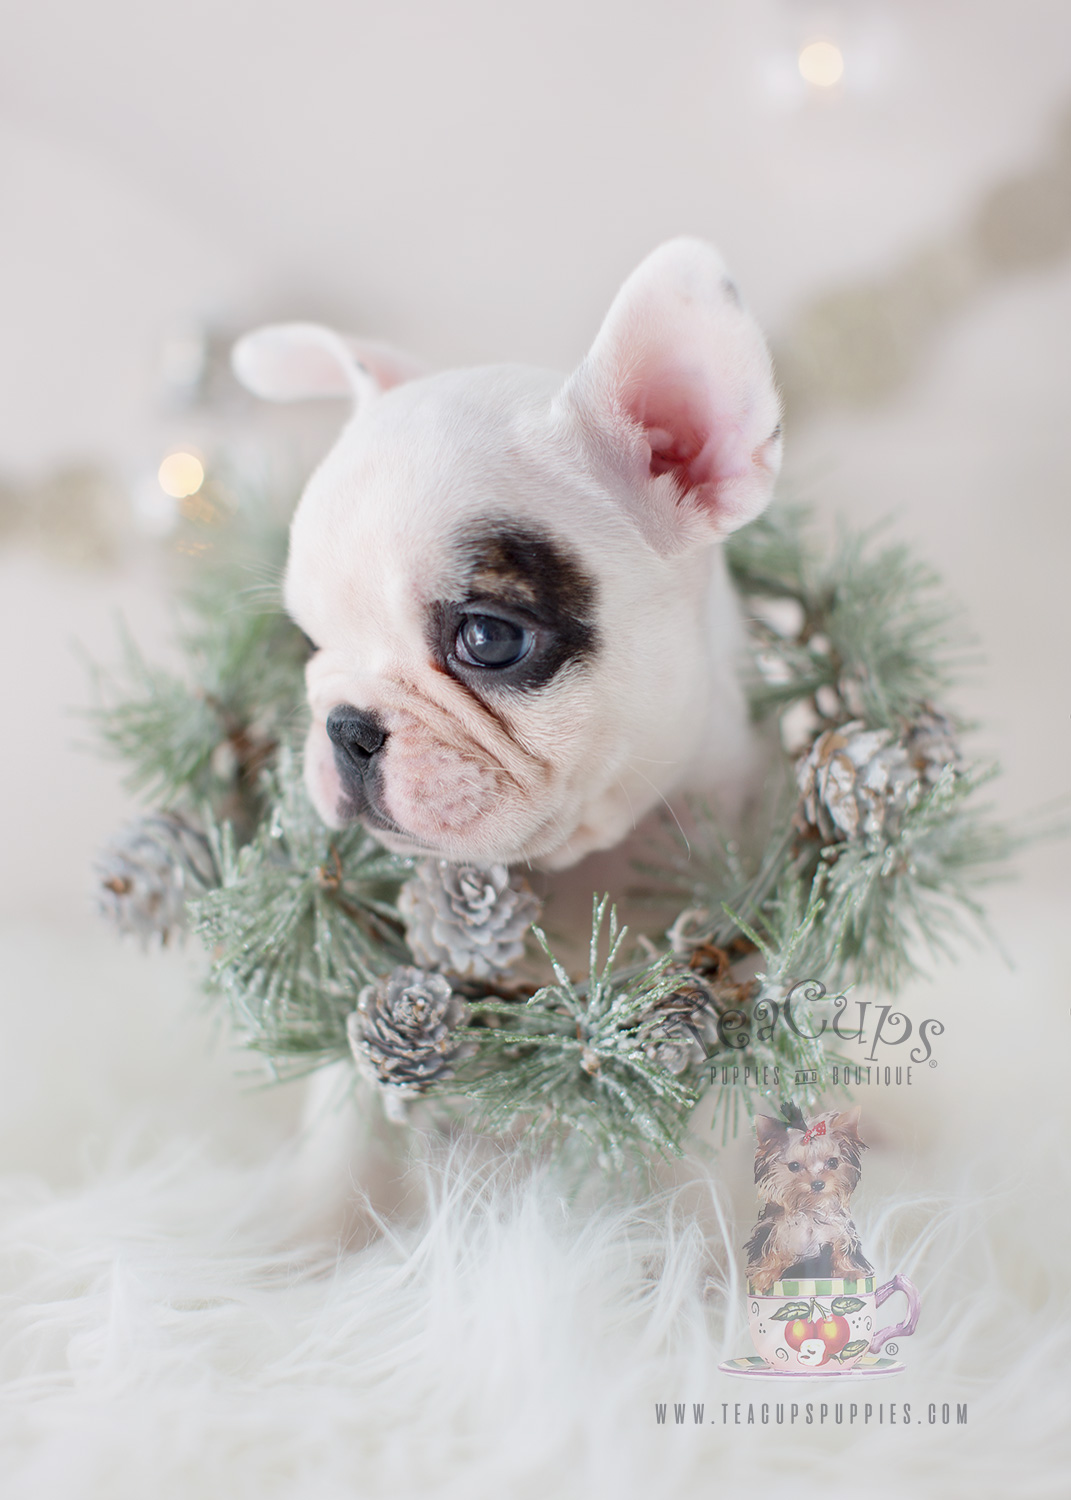 The Frenchie of your dreams is here  Teacups Puppies  Boutique